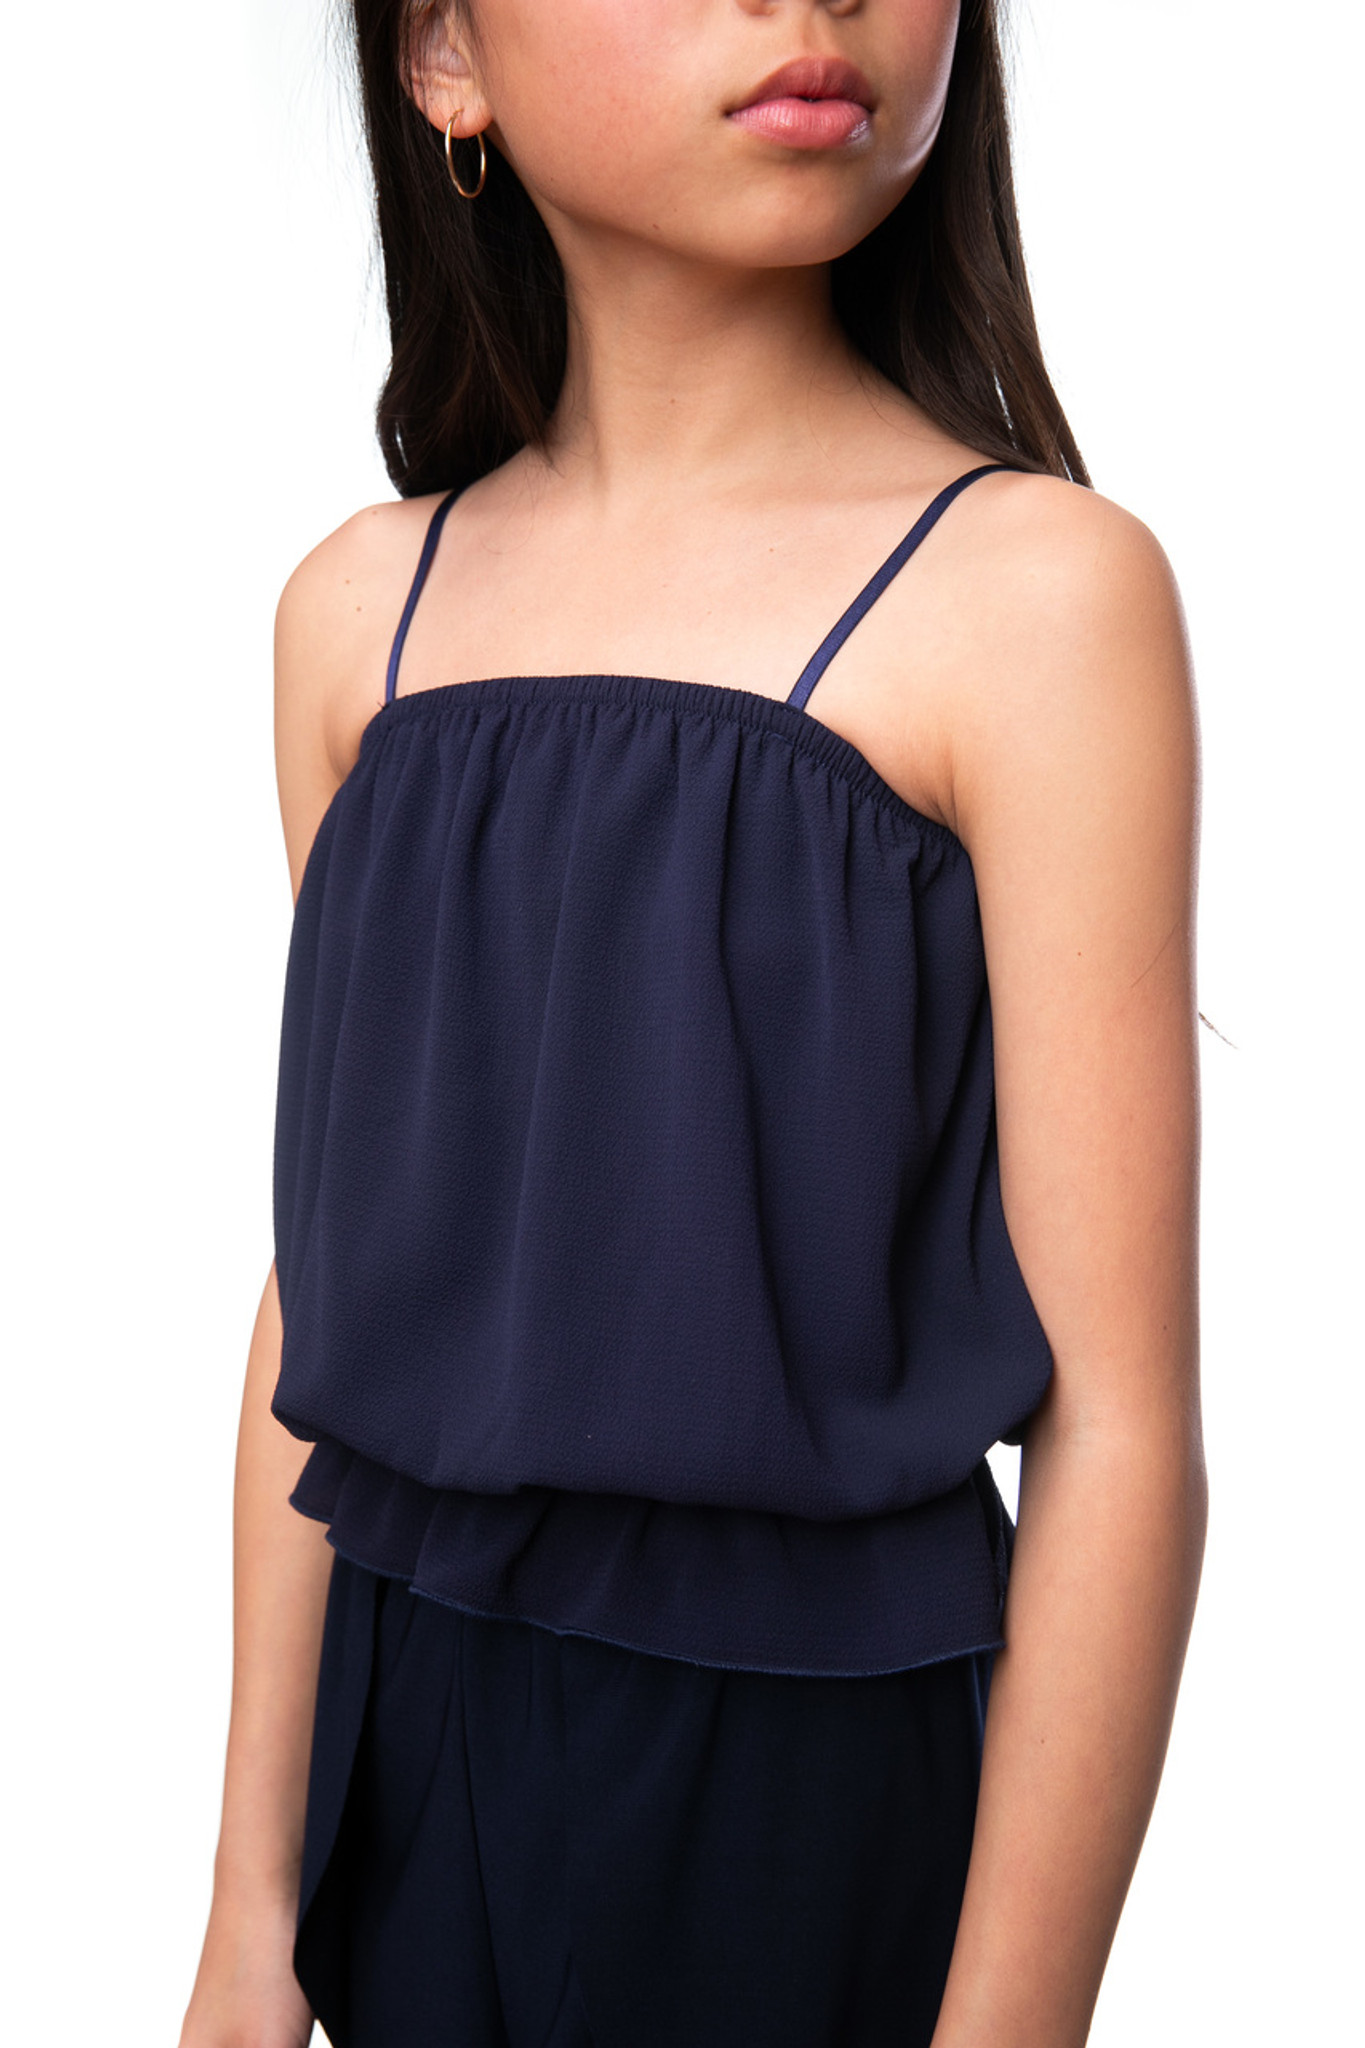 Tween Girls Navy Spaghetti Strap Top